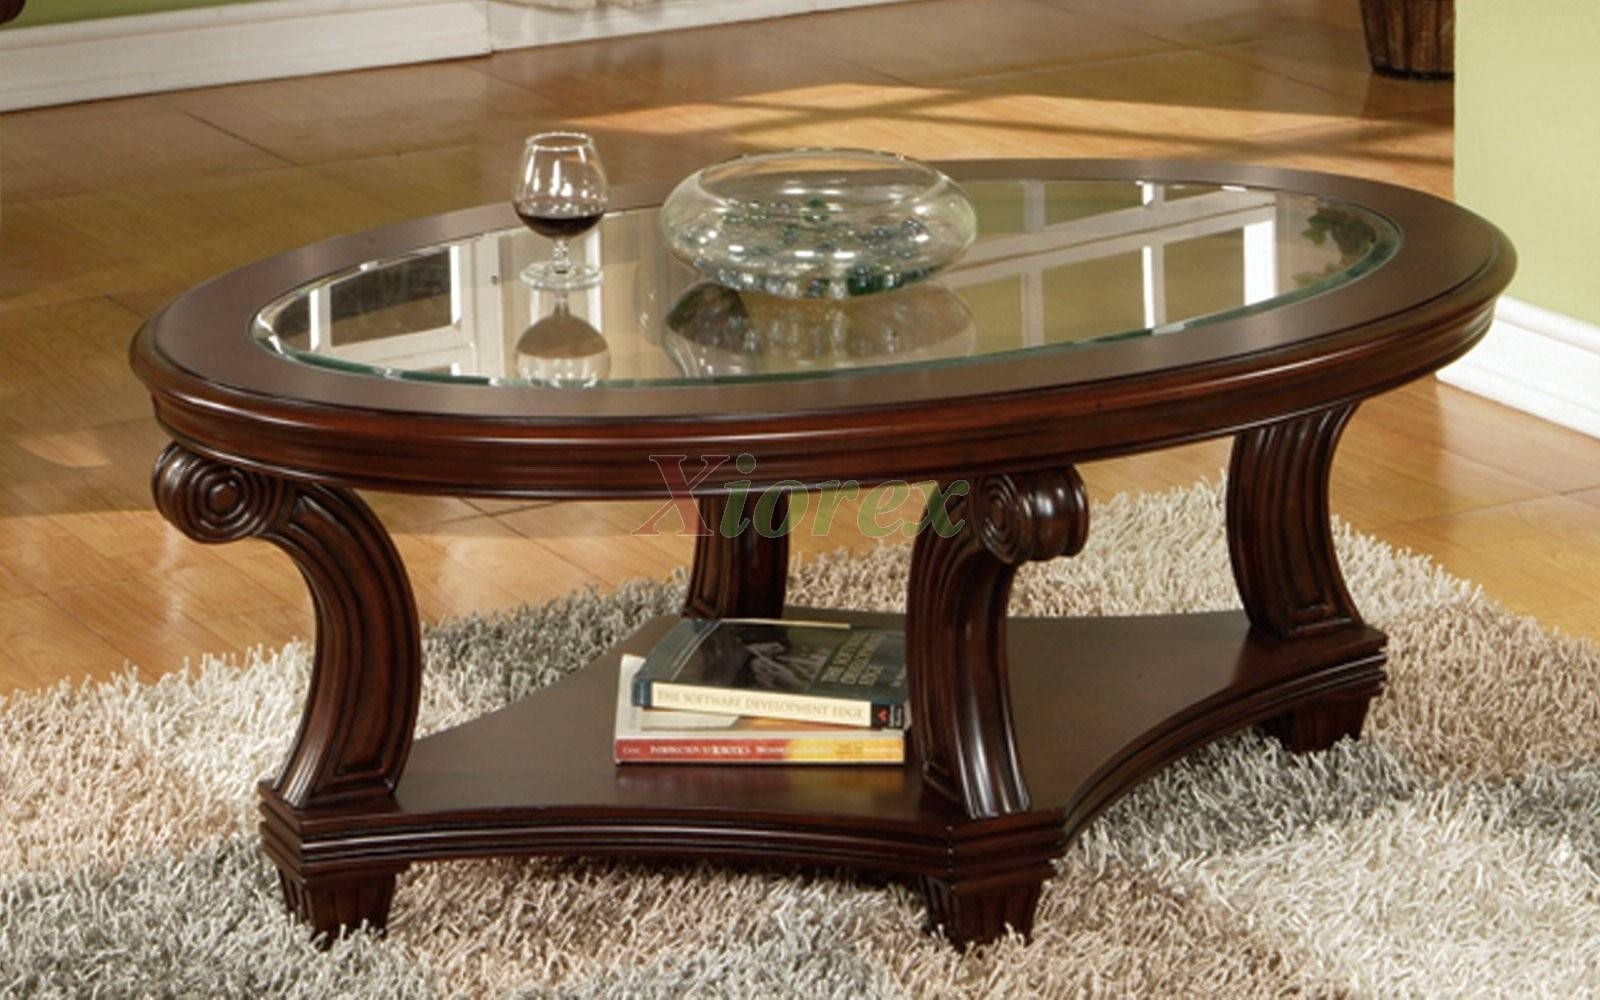 Round Cherry Glass Coffee Table | Coffee Tables Decoration pertaining to Cherry Wood Coffee Table Sets (Image 29 of 30)